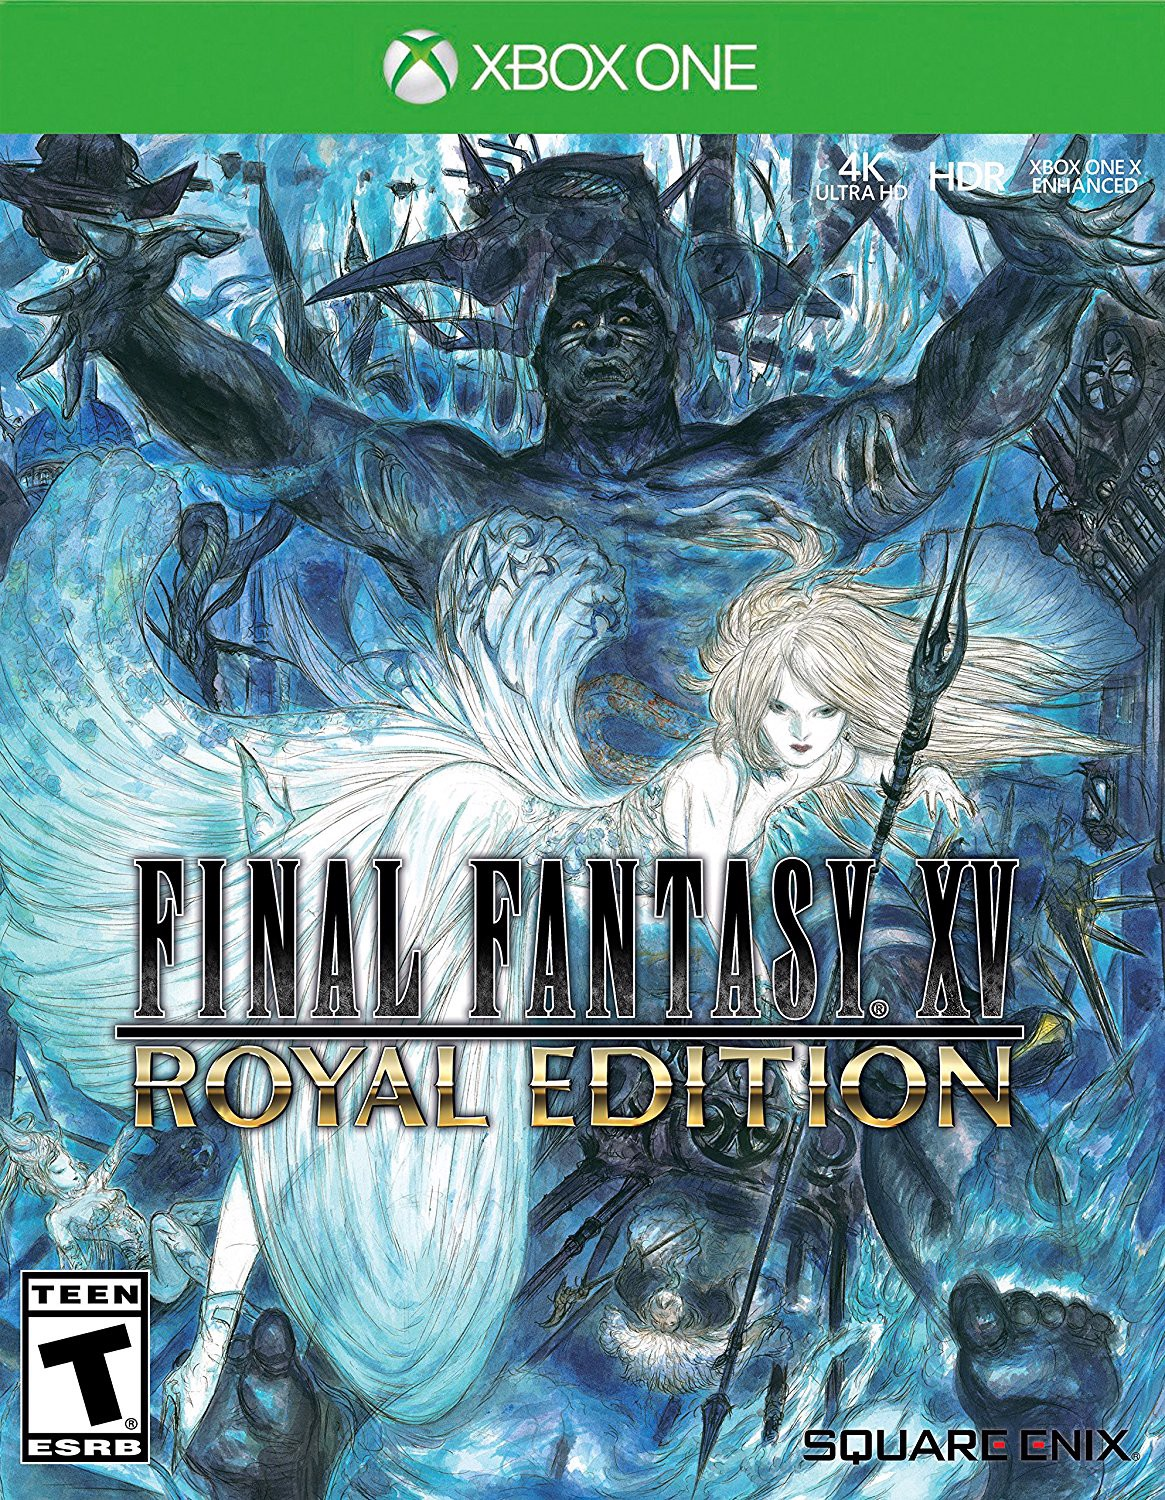 251 - Final Fantasy XV Royal Edition